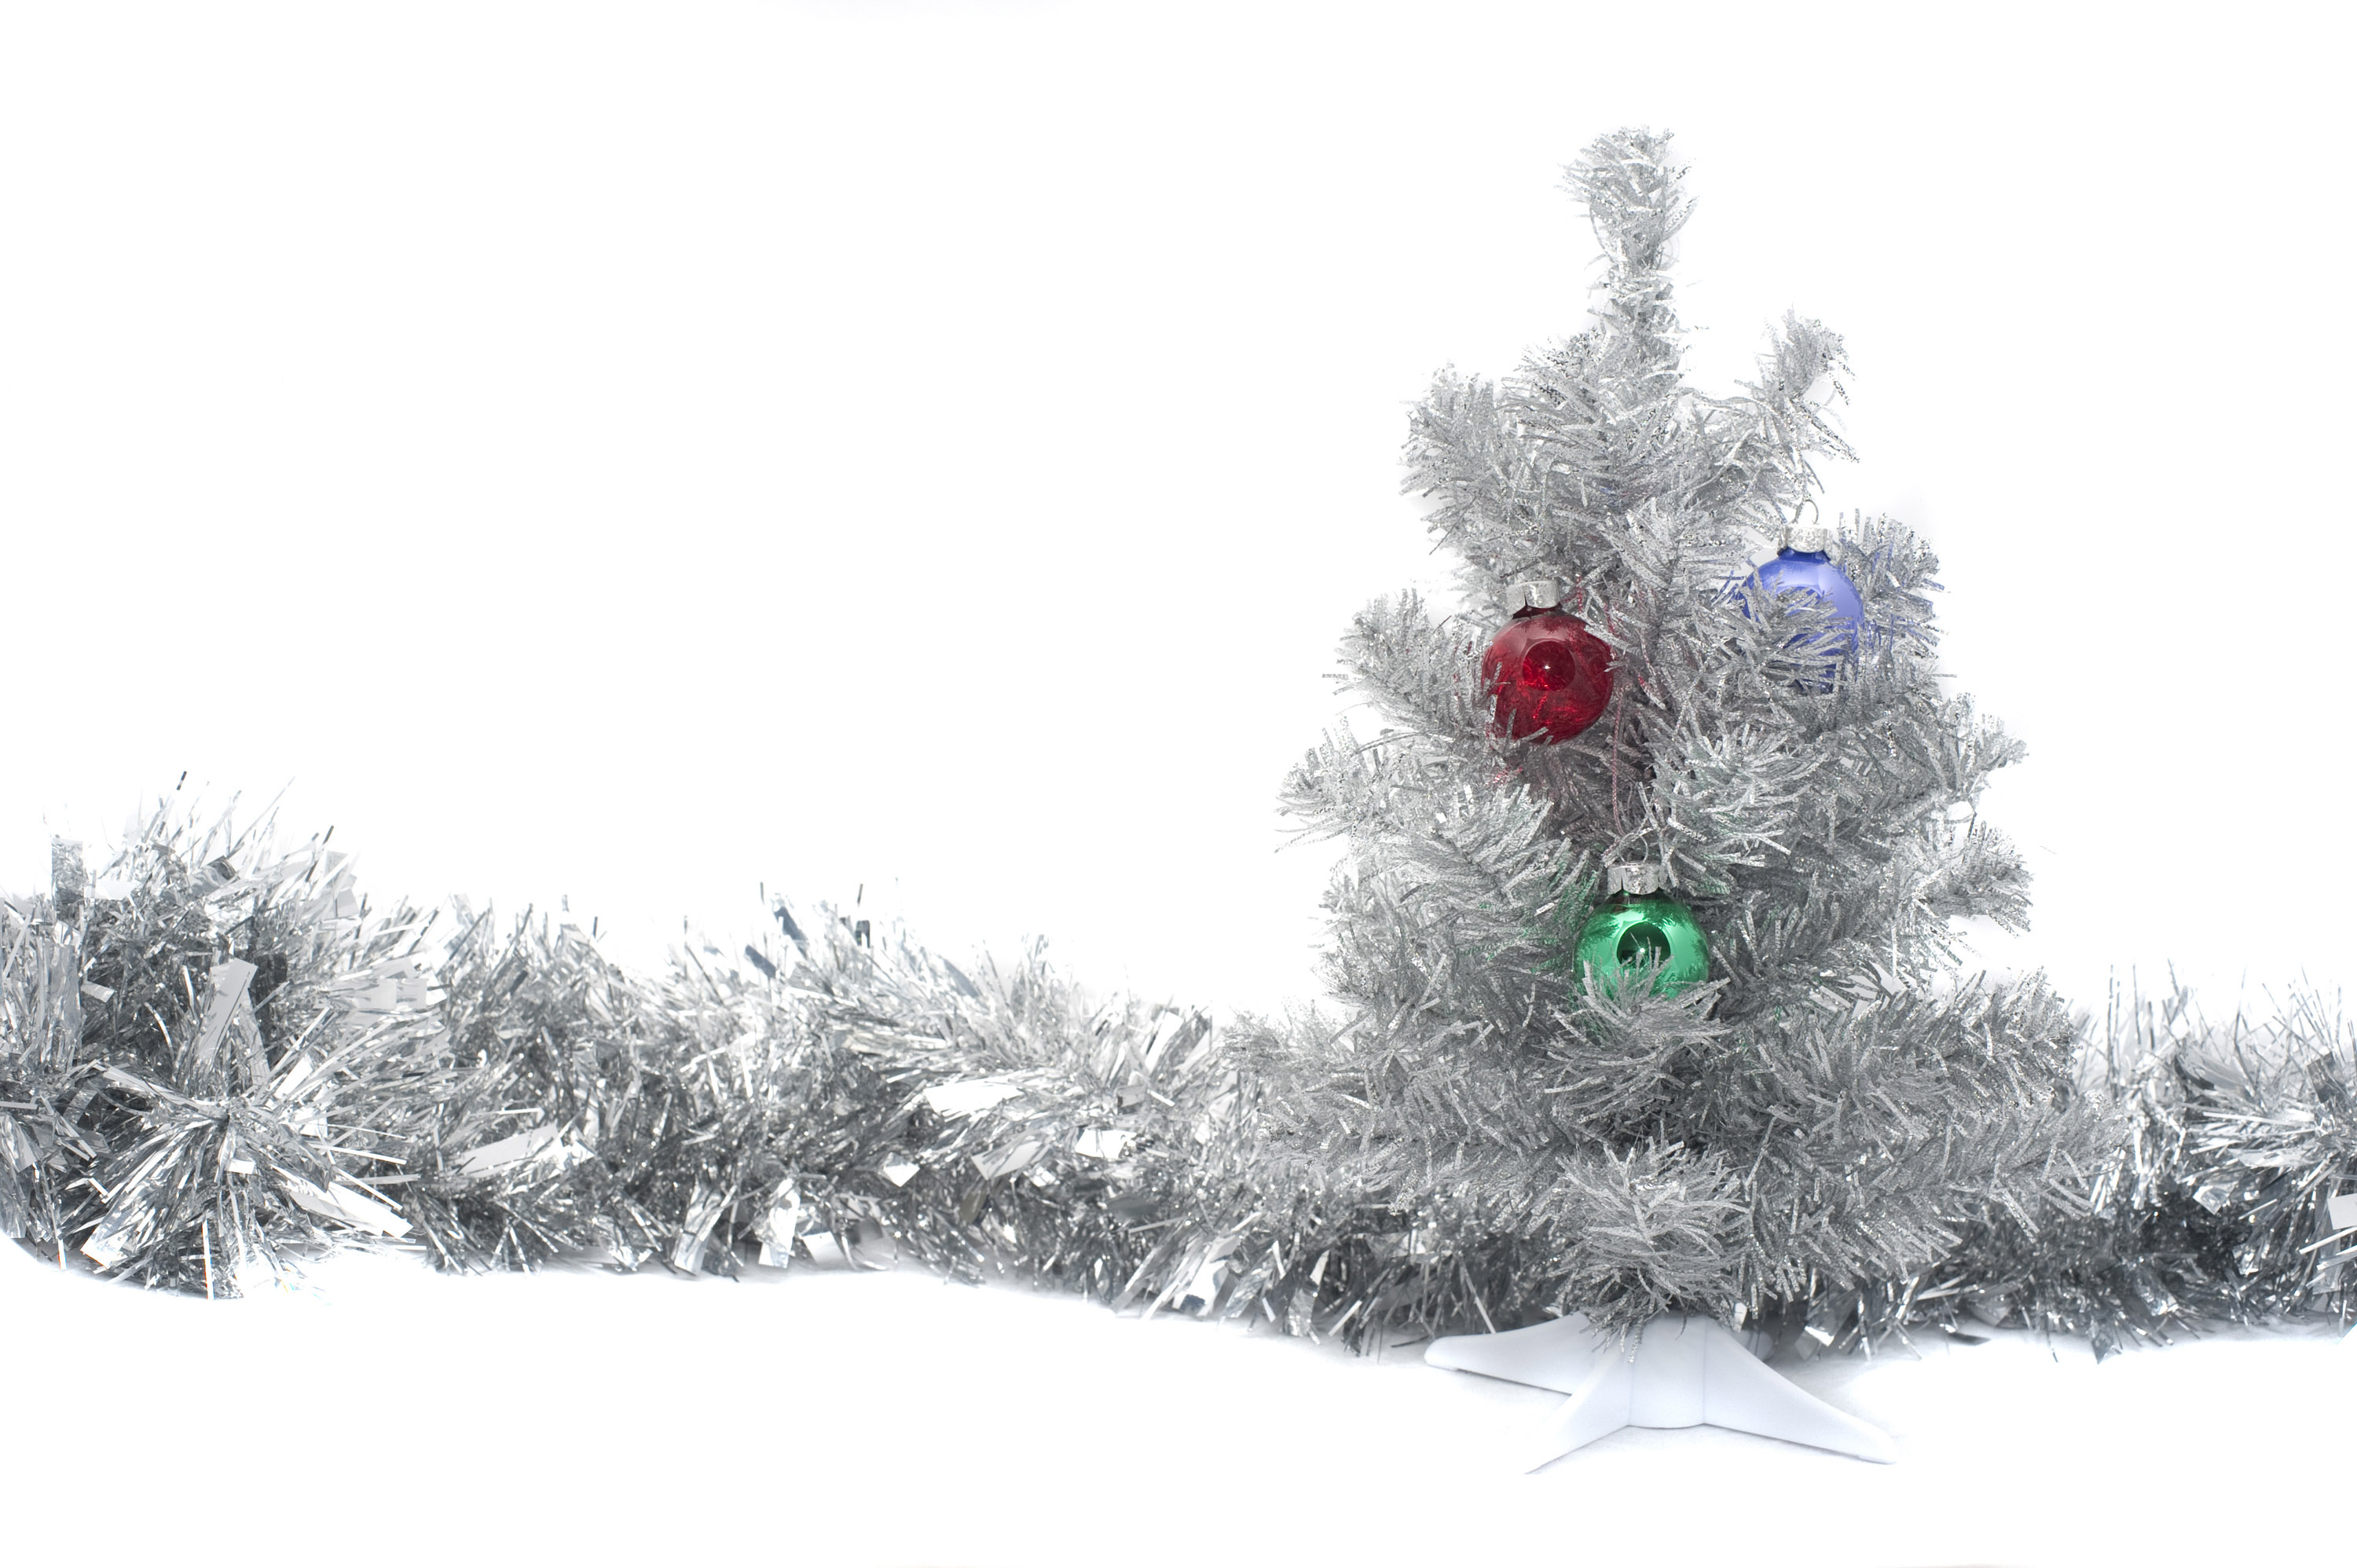 Free stock photo 4711 christmas tree and tinsel for White xmas decorations